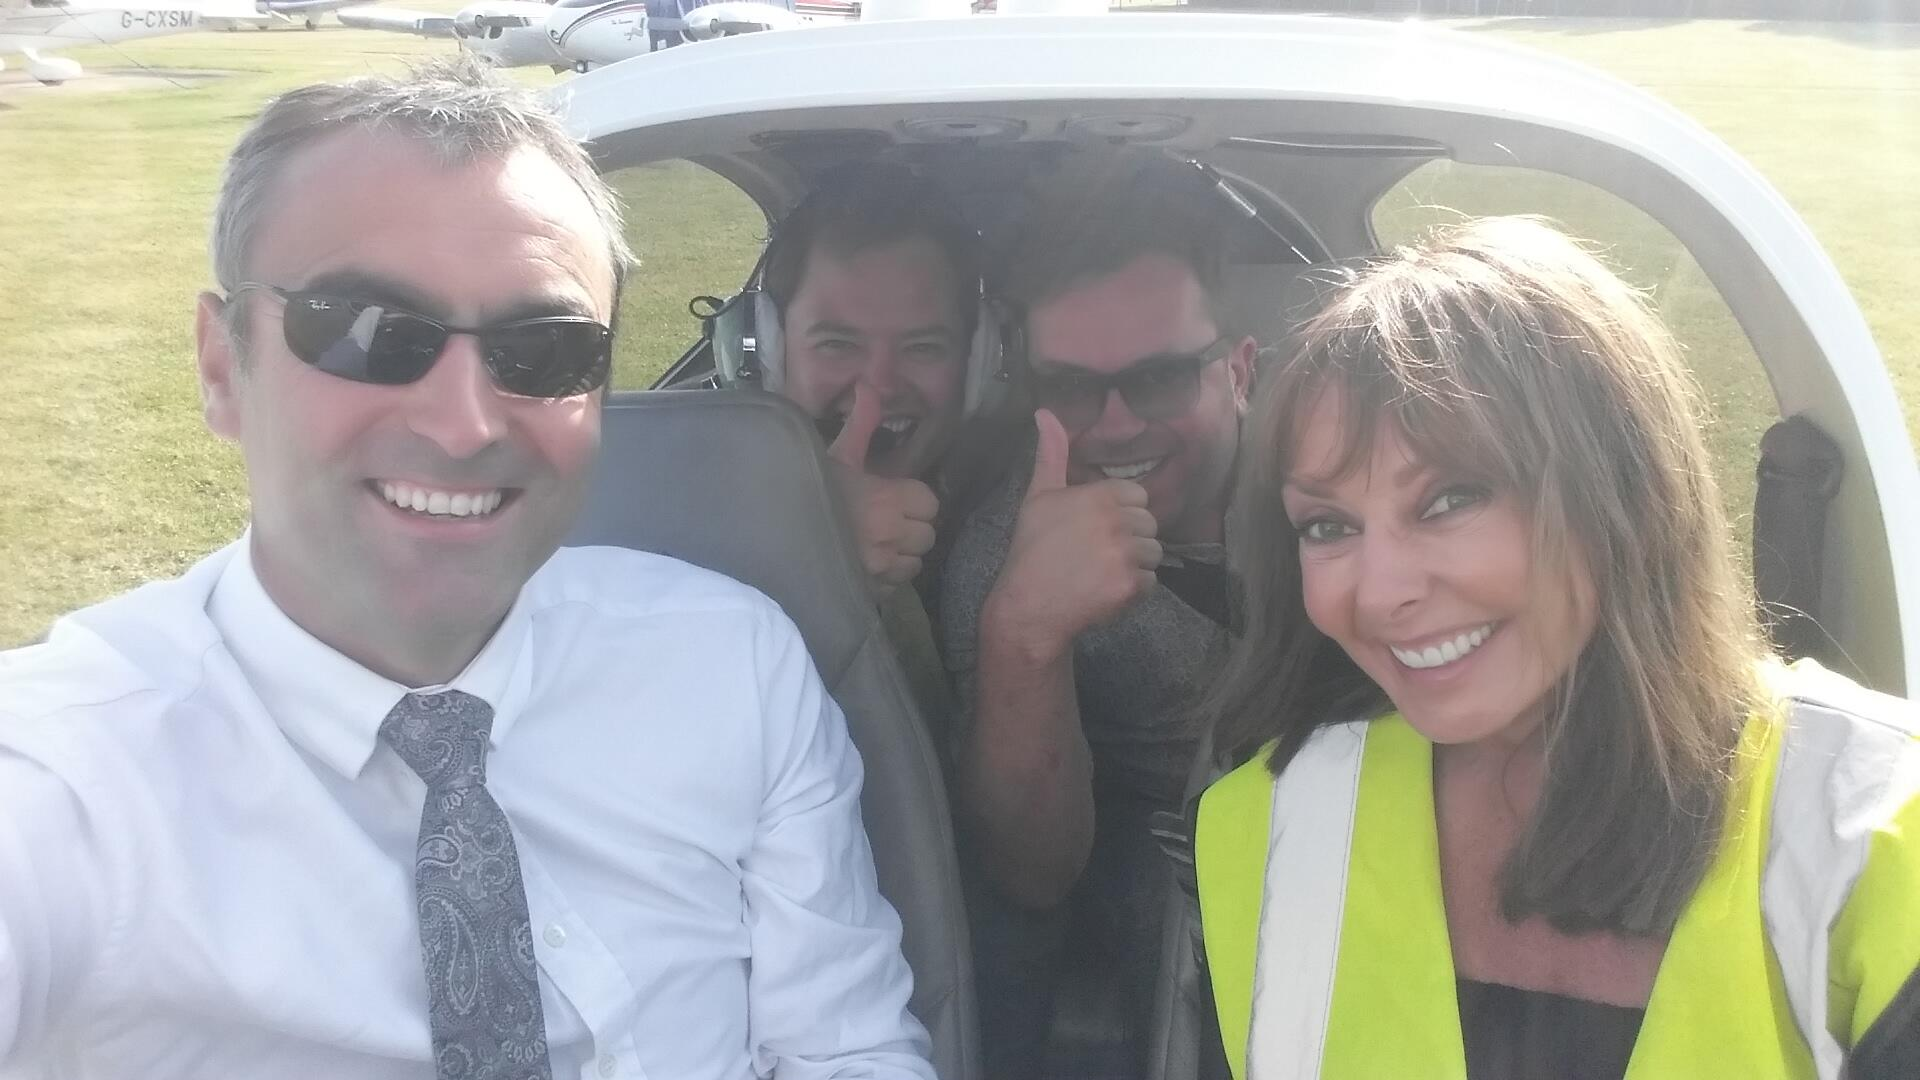 Flying into @airtattoo this morning.... Buddies in the back @alancarr... Wahoo  x http://t.co/fQZVO4QIVG